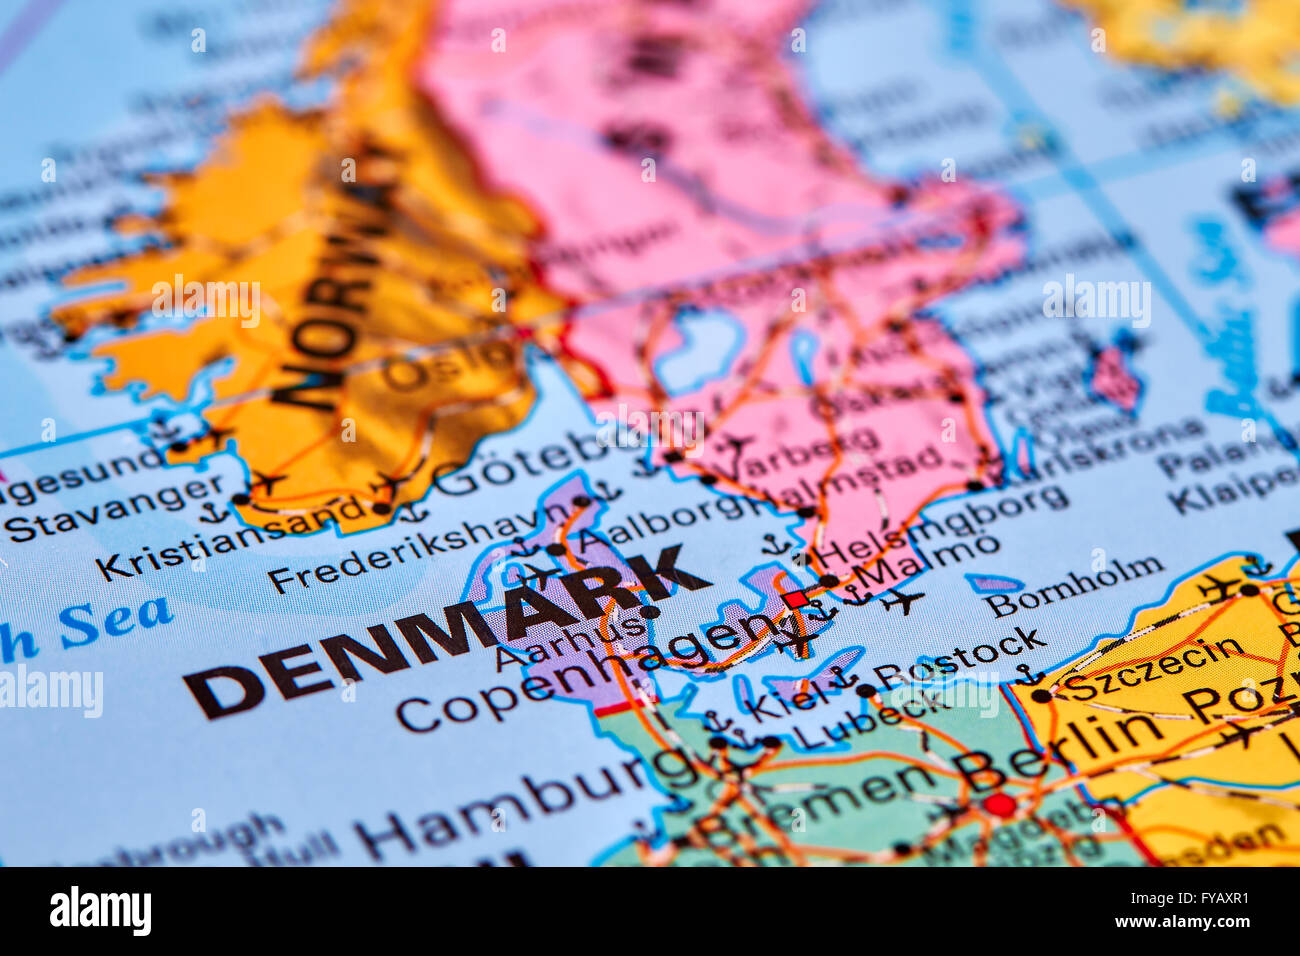 denmark country in europe on the world map